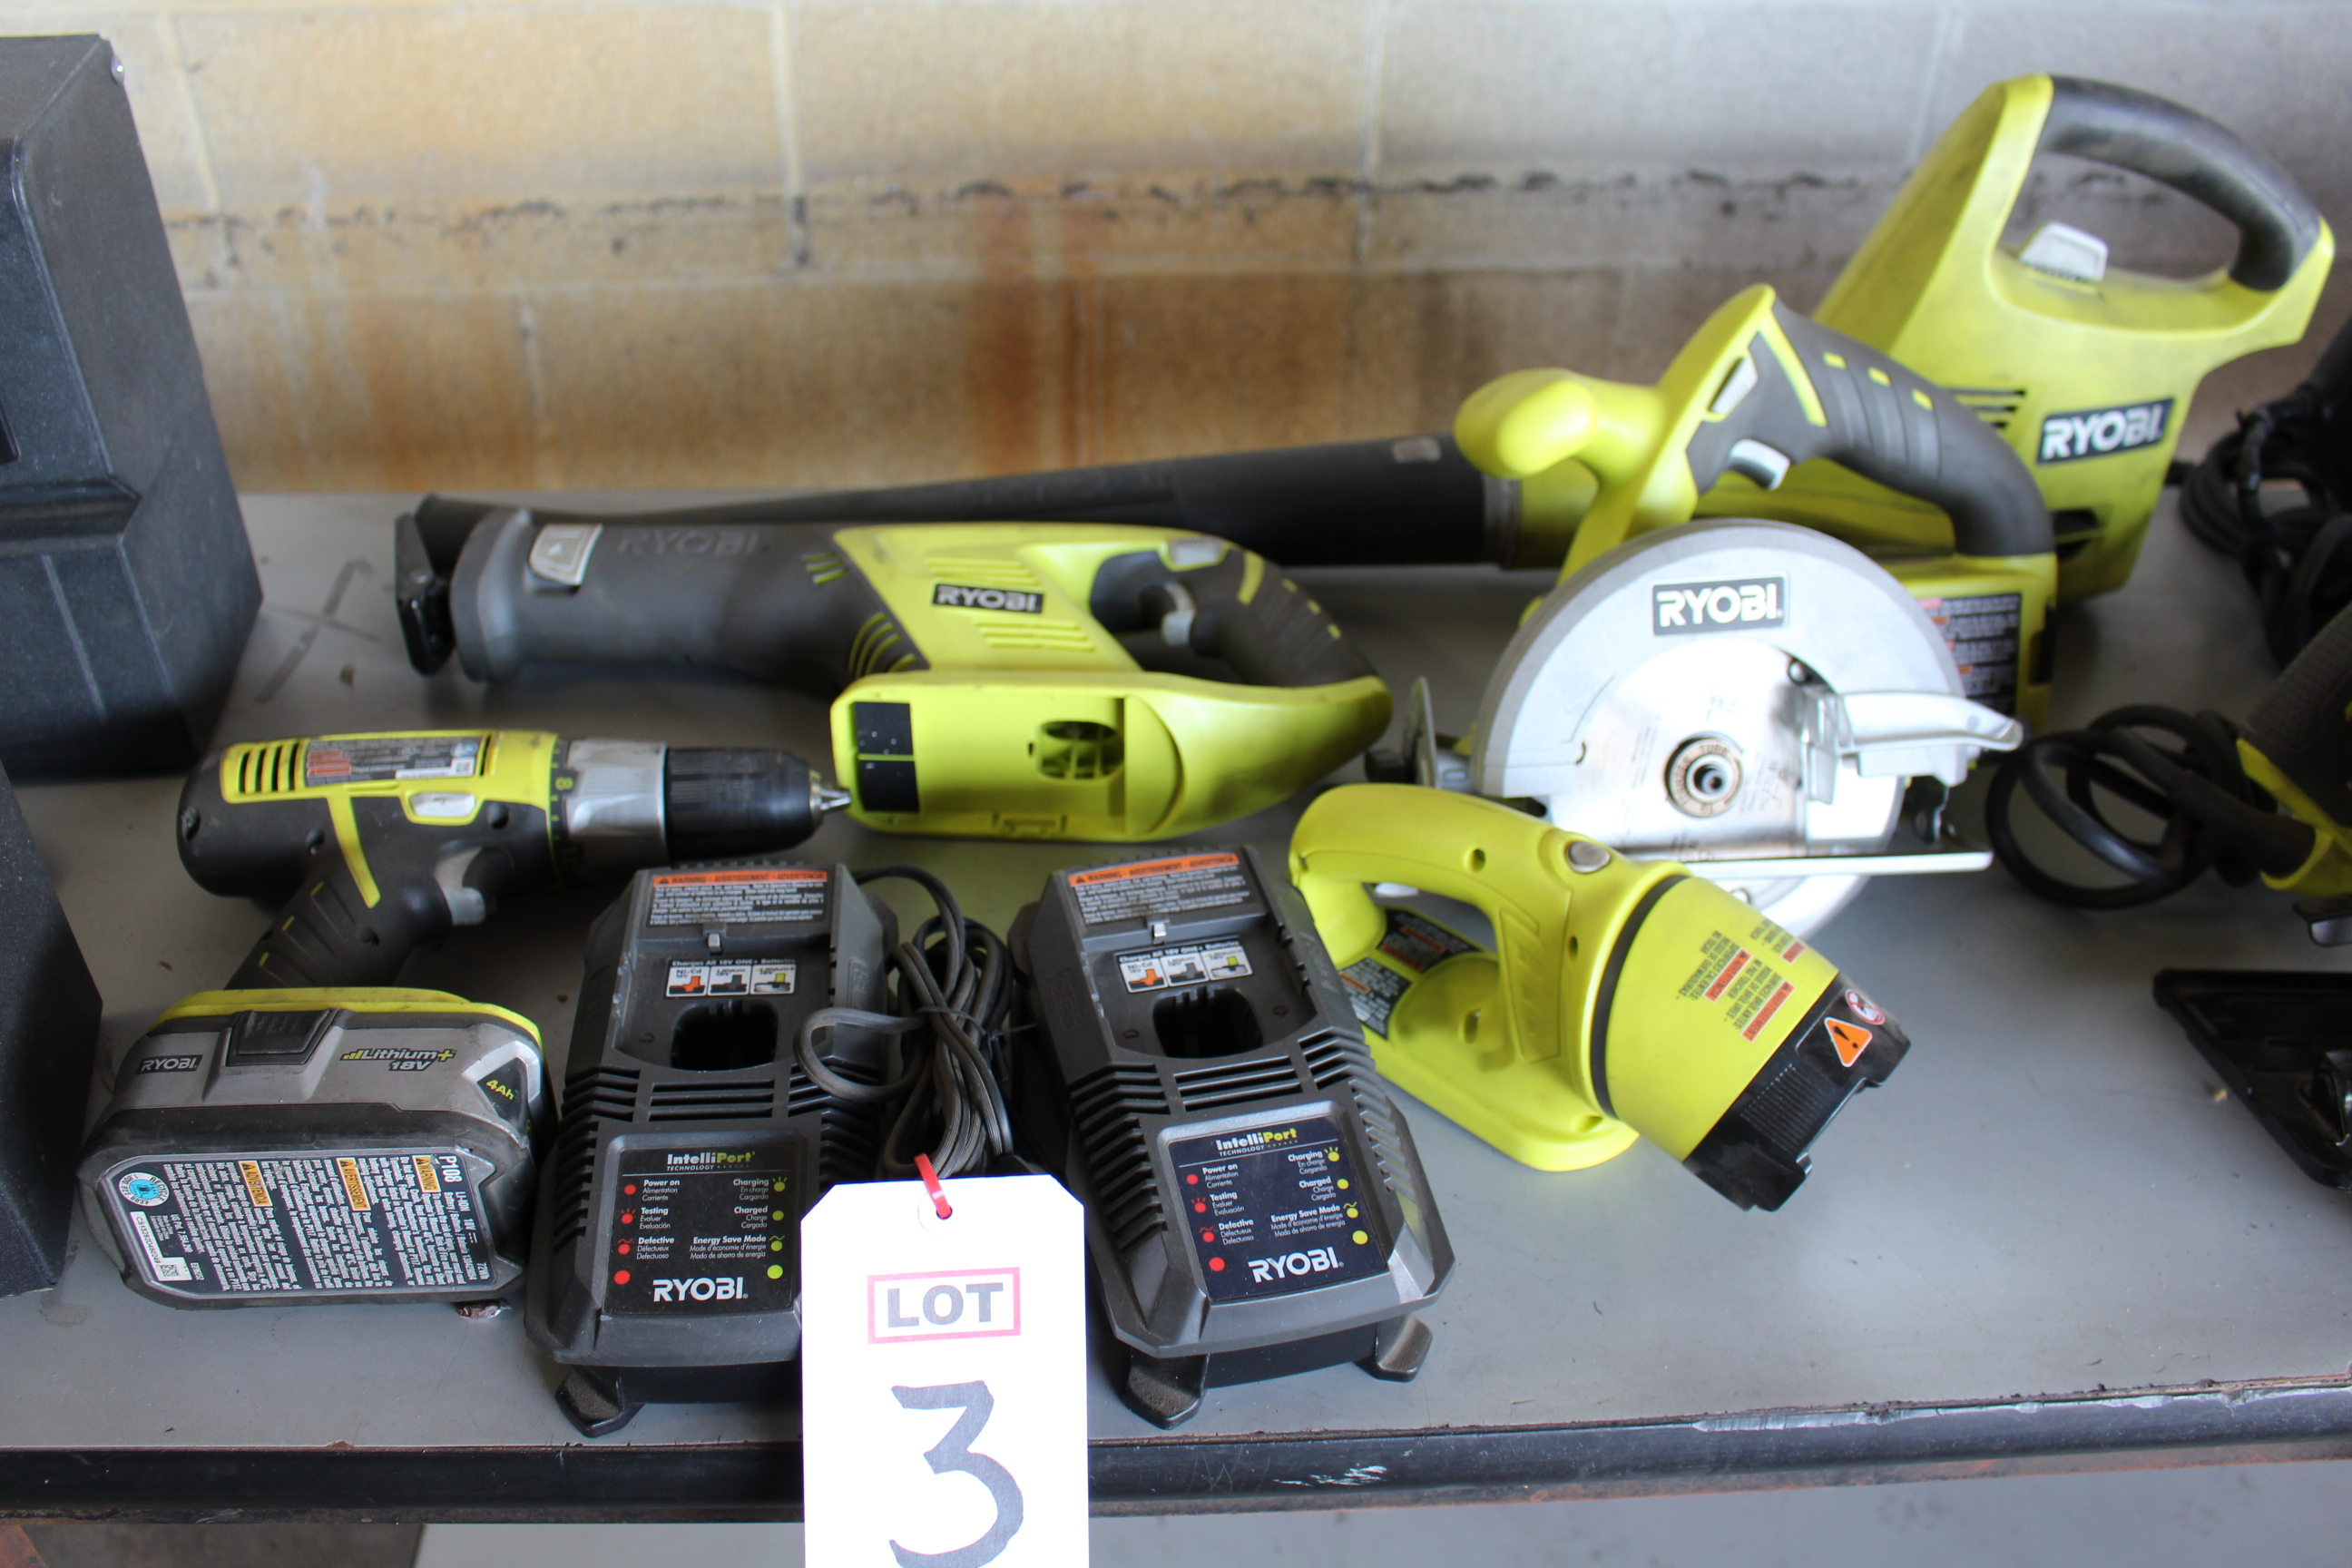 Lot 3 - RYOBI COMBO DRILL, CIRCULAR SAW/SAWZALL W/ (2) BATTERIES AND (2) CHARGERS